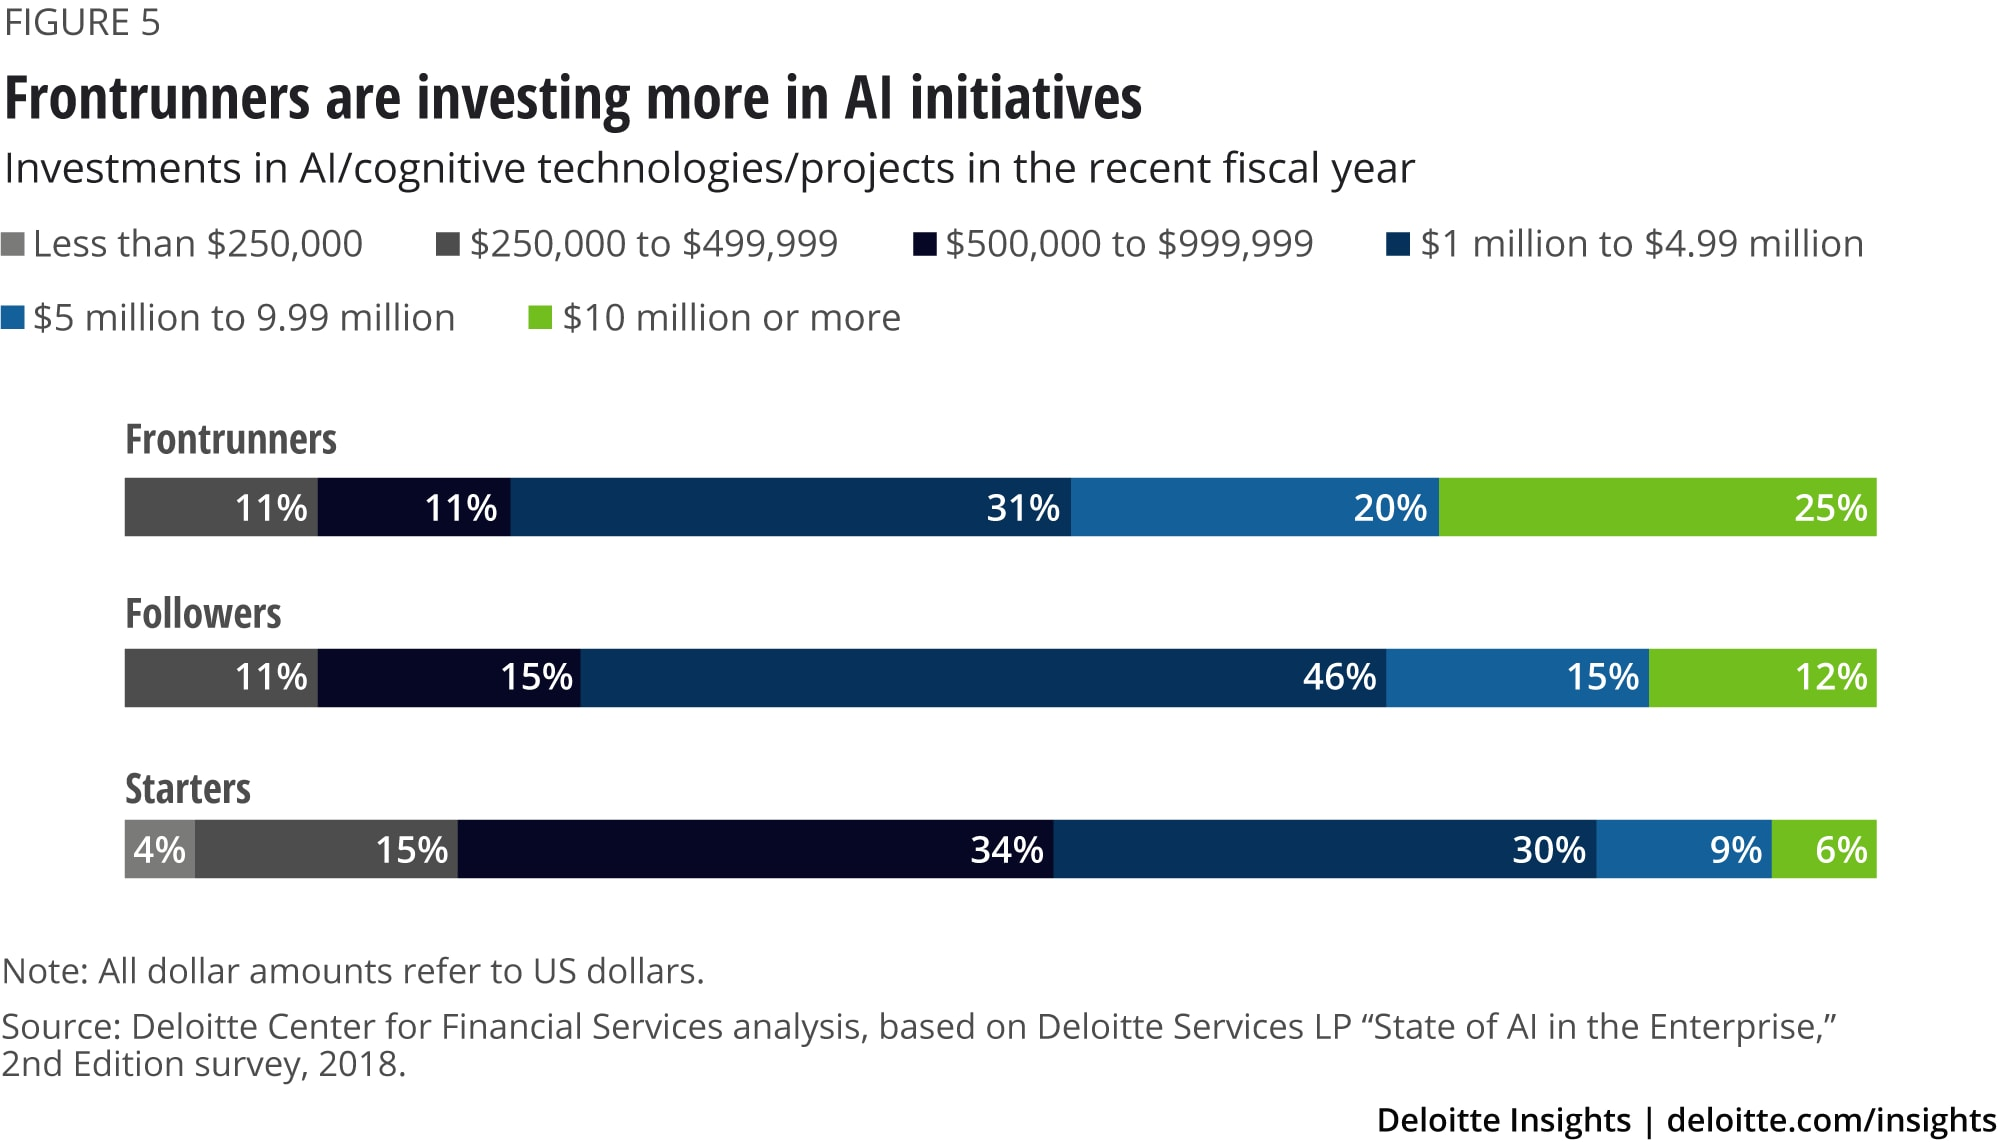 Frontrunners are investing more in AI initiatives